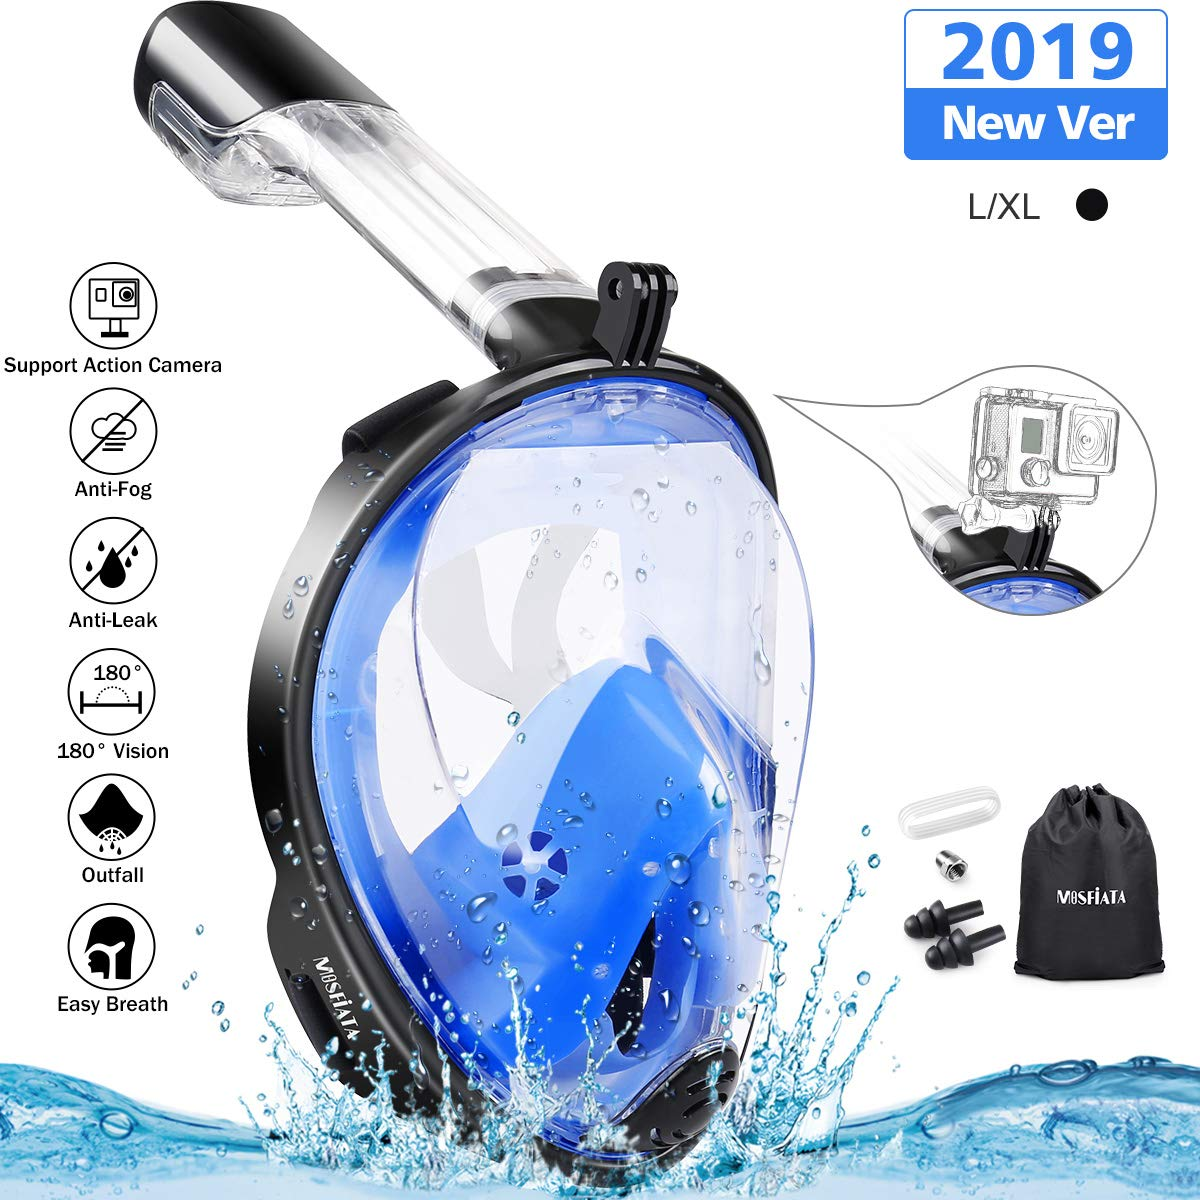 MOSFiATA Snorkel Mask 180° Panoramic View Full Face Diving Mask Anti-Fog Anti-Leak Safety Diving with Detachable Action Camera Mount for Adults and Youth by MOSFiATA